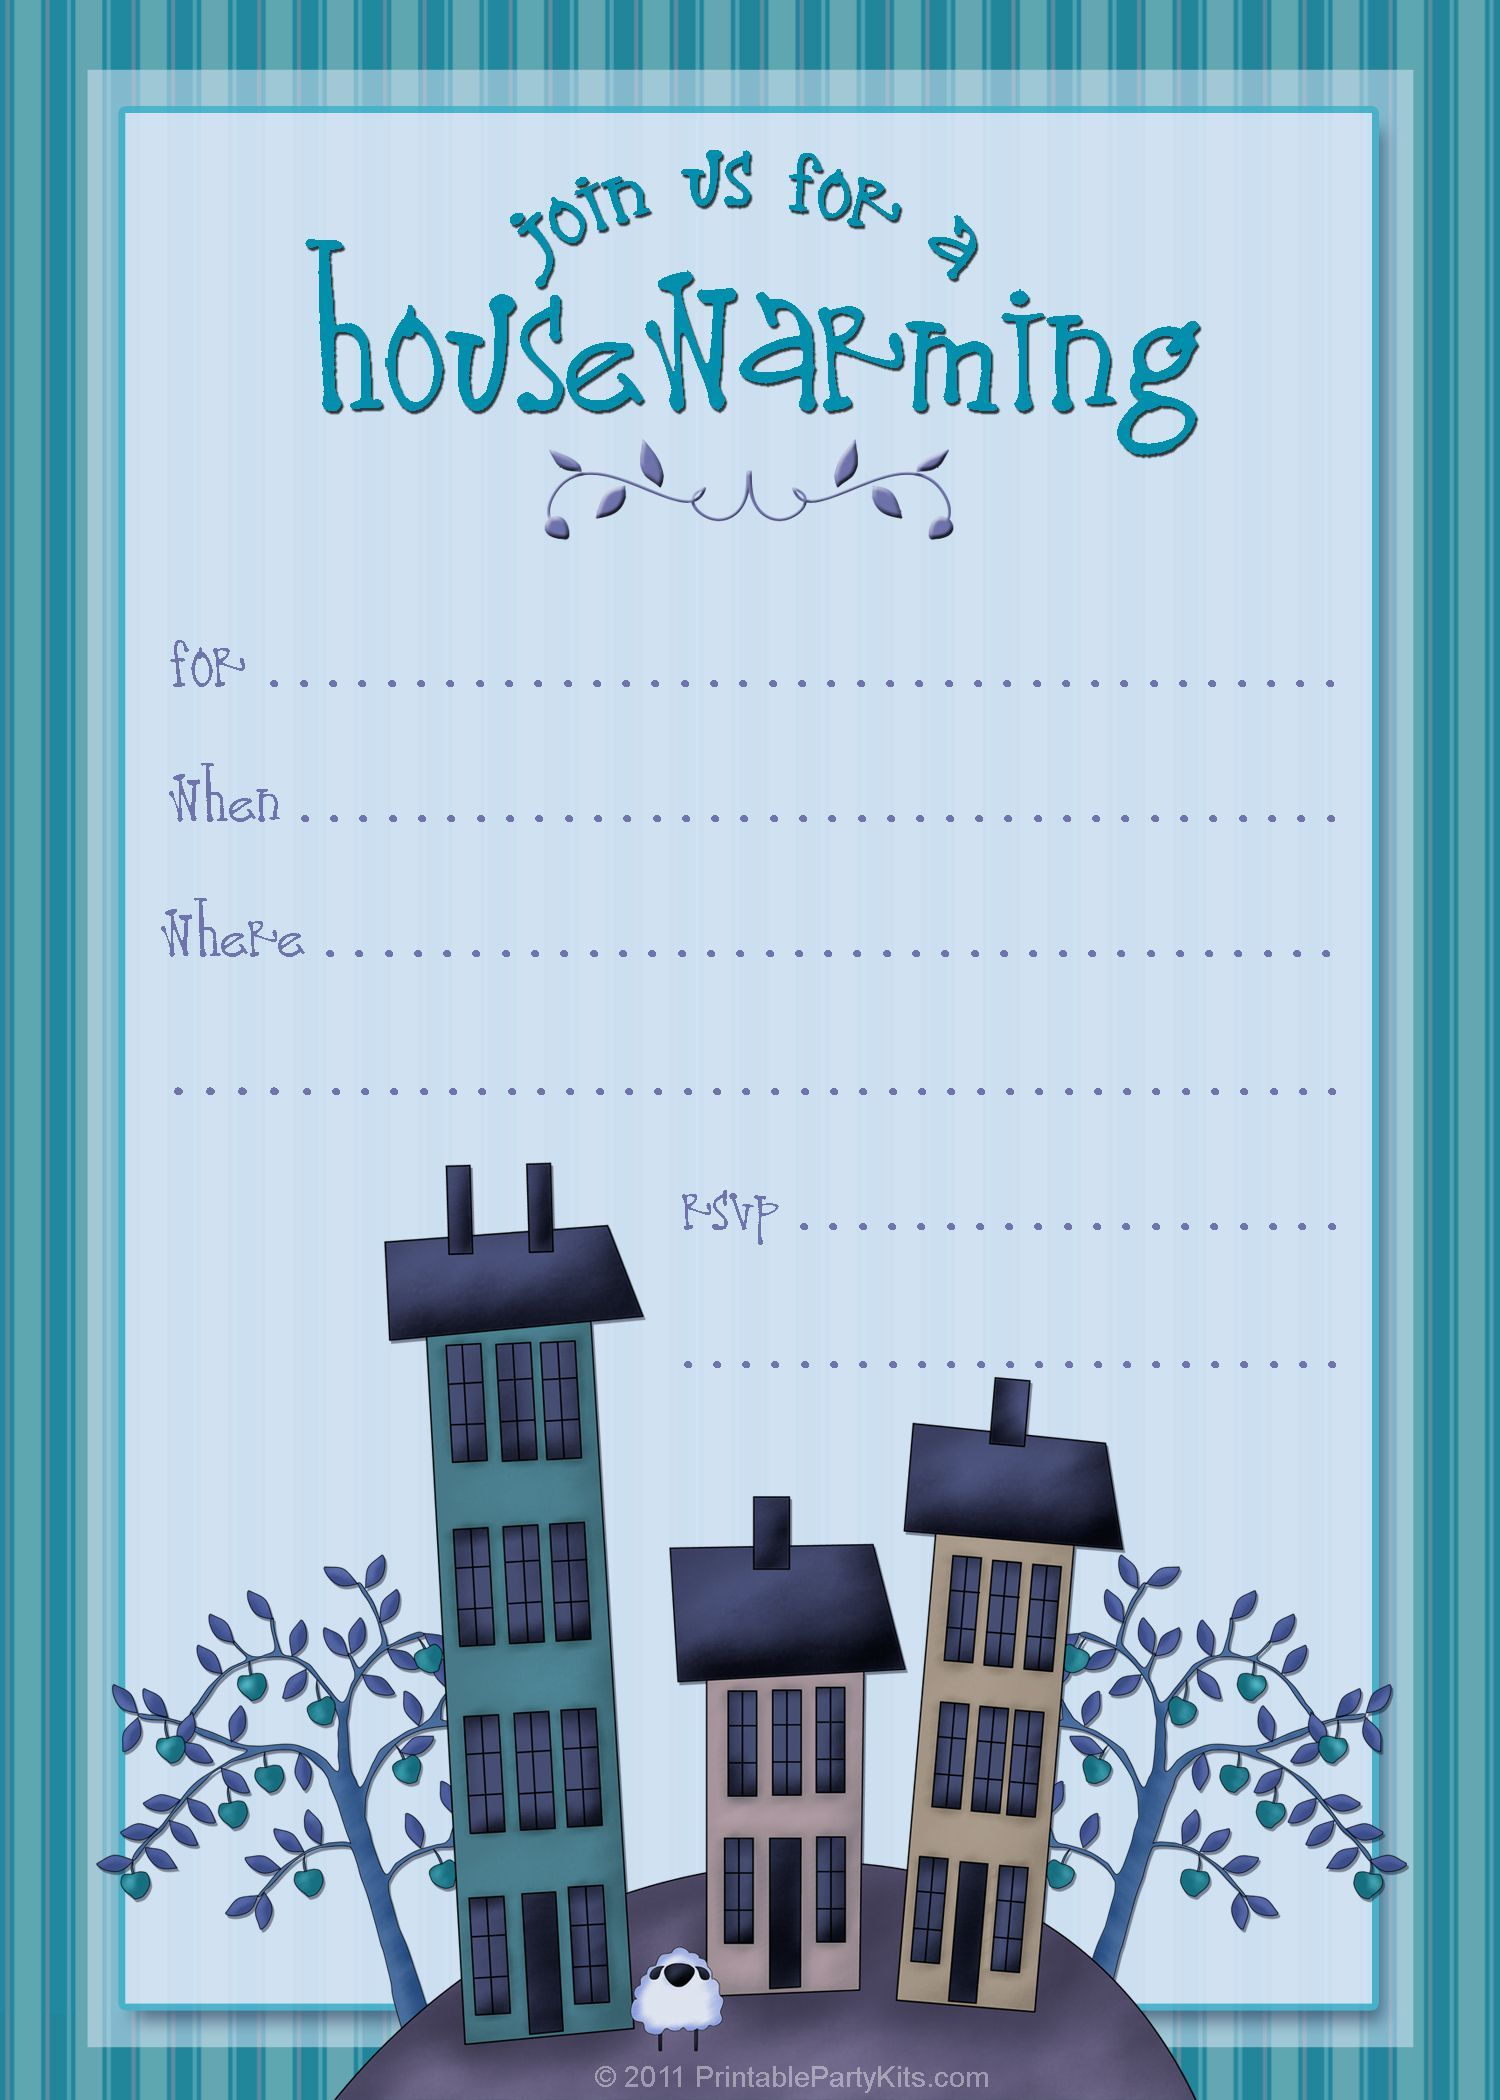 Housewarming invitation wording first home ideas pinterest housewarming invitation wording first home monicamarmolfo Image collections